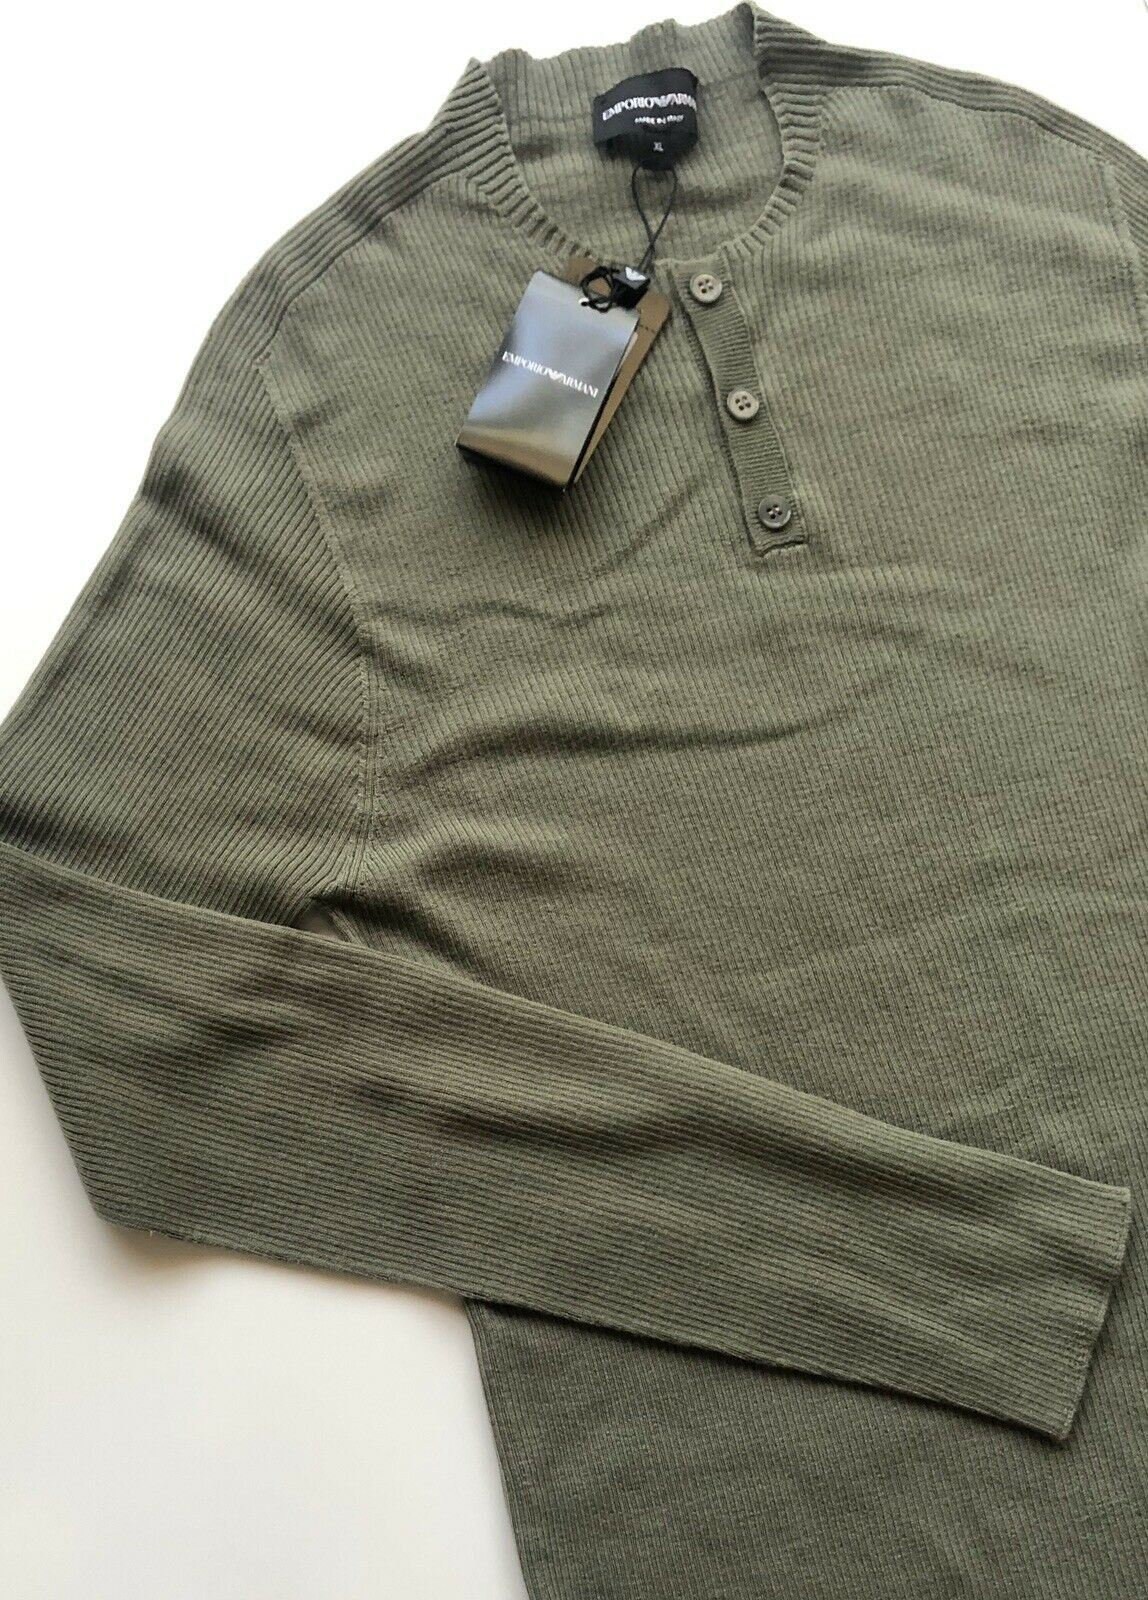 NWT $545 Emporio  Armani Men's Crewneck 100% Wool Sweater Green Size XL Italy